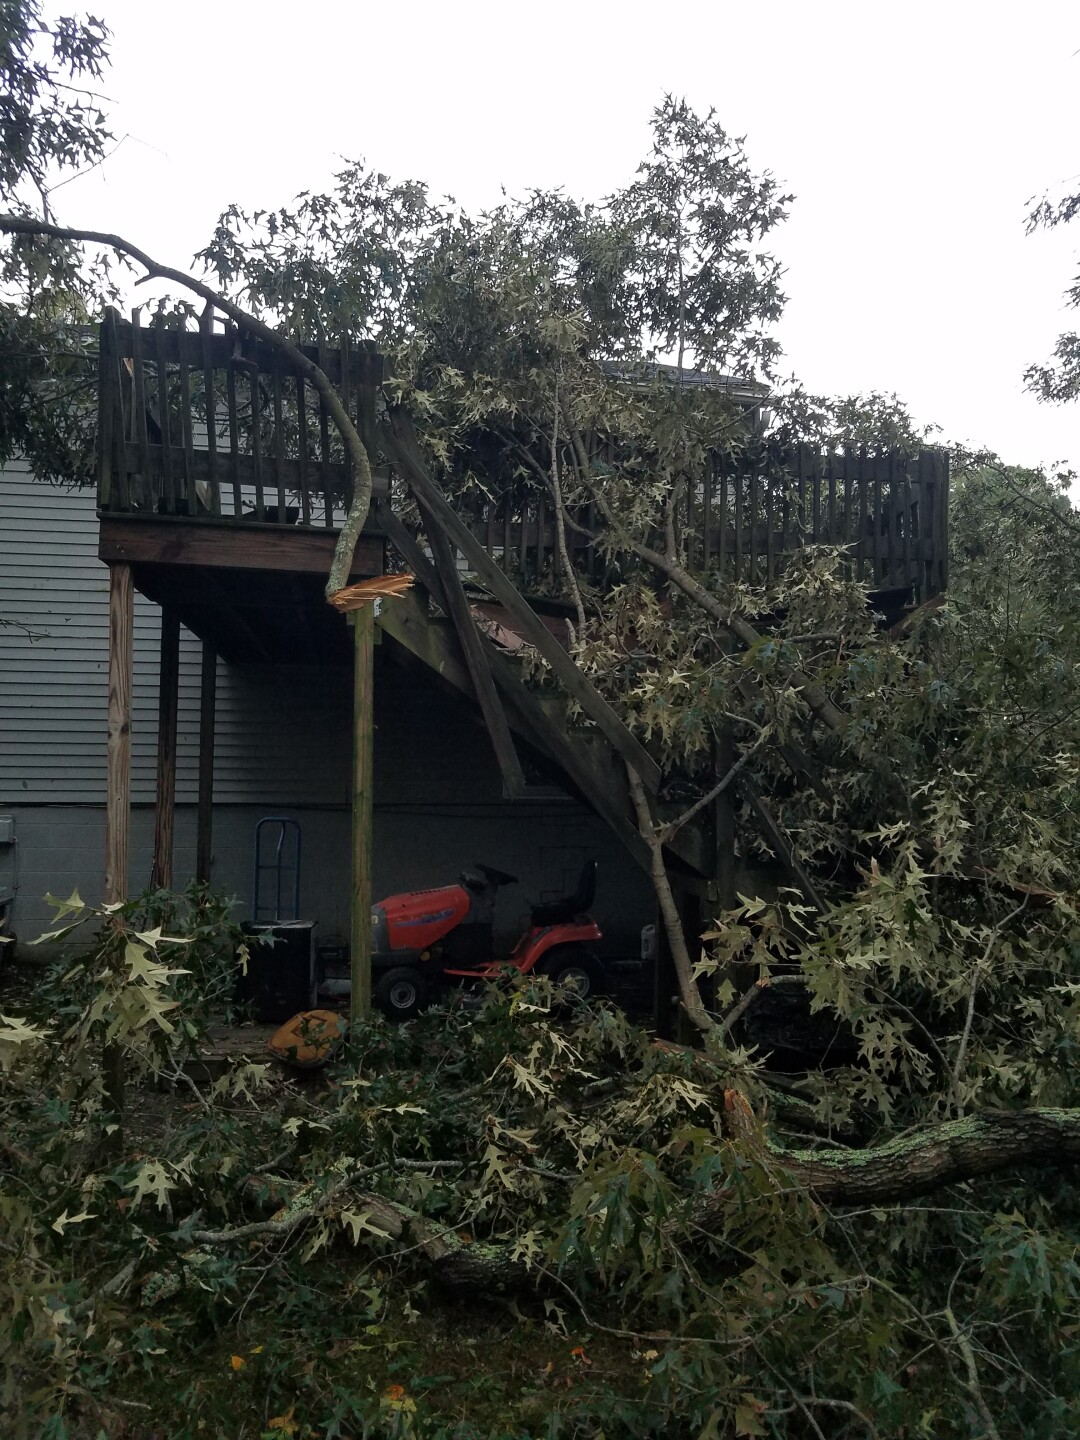 Photos: 7 tornadoes confirmed in Virginia during Tropical Storm Michael